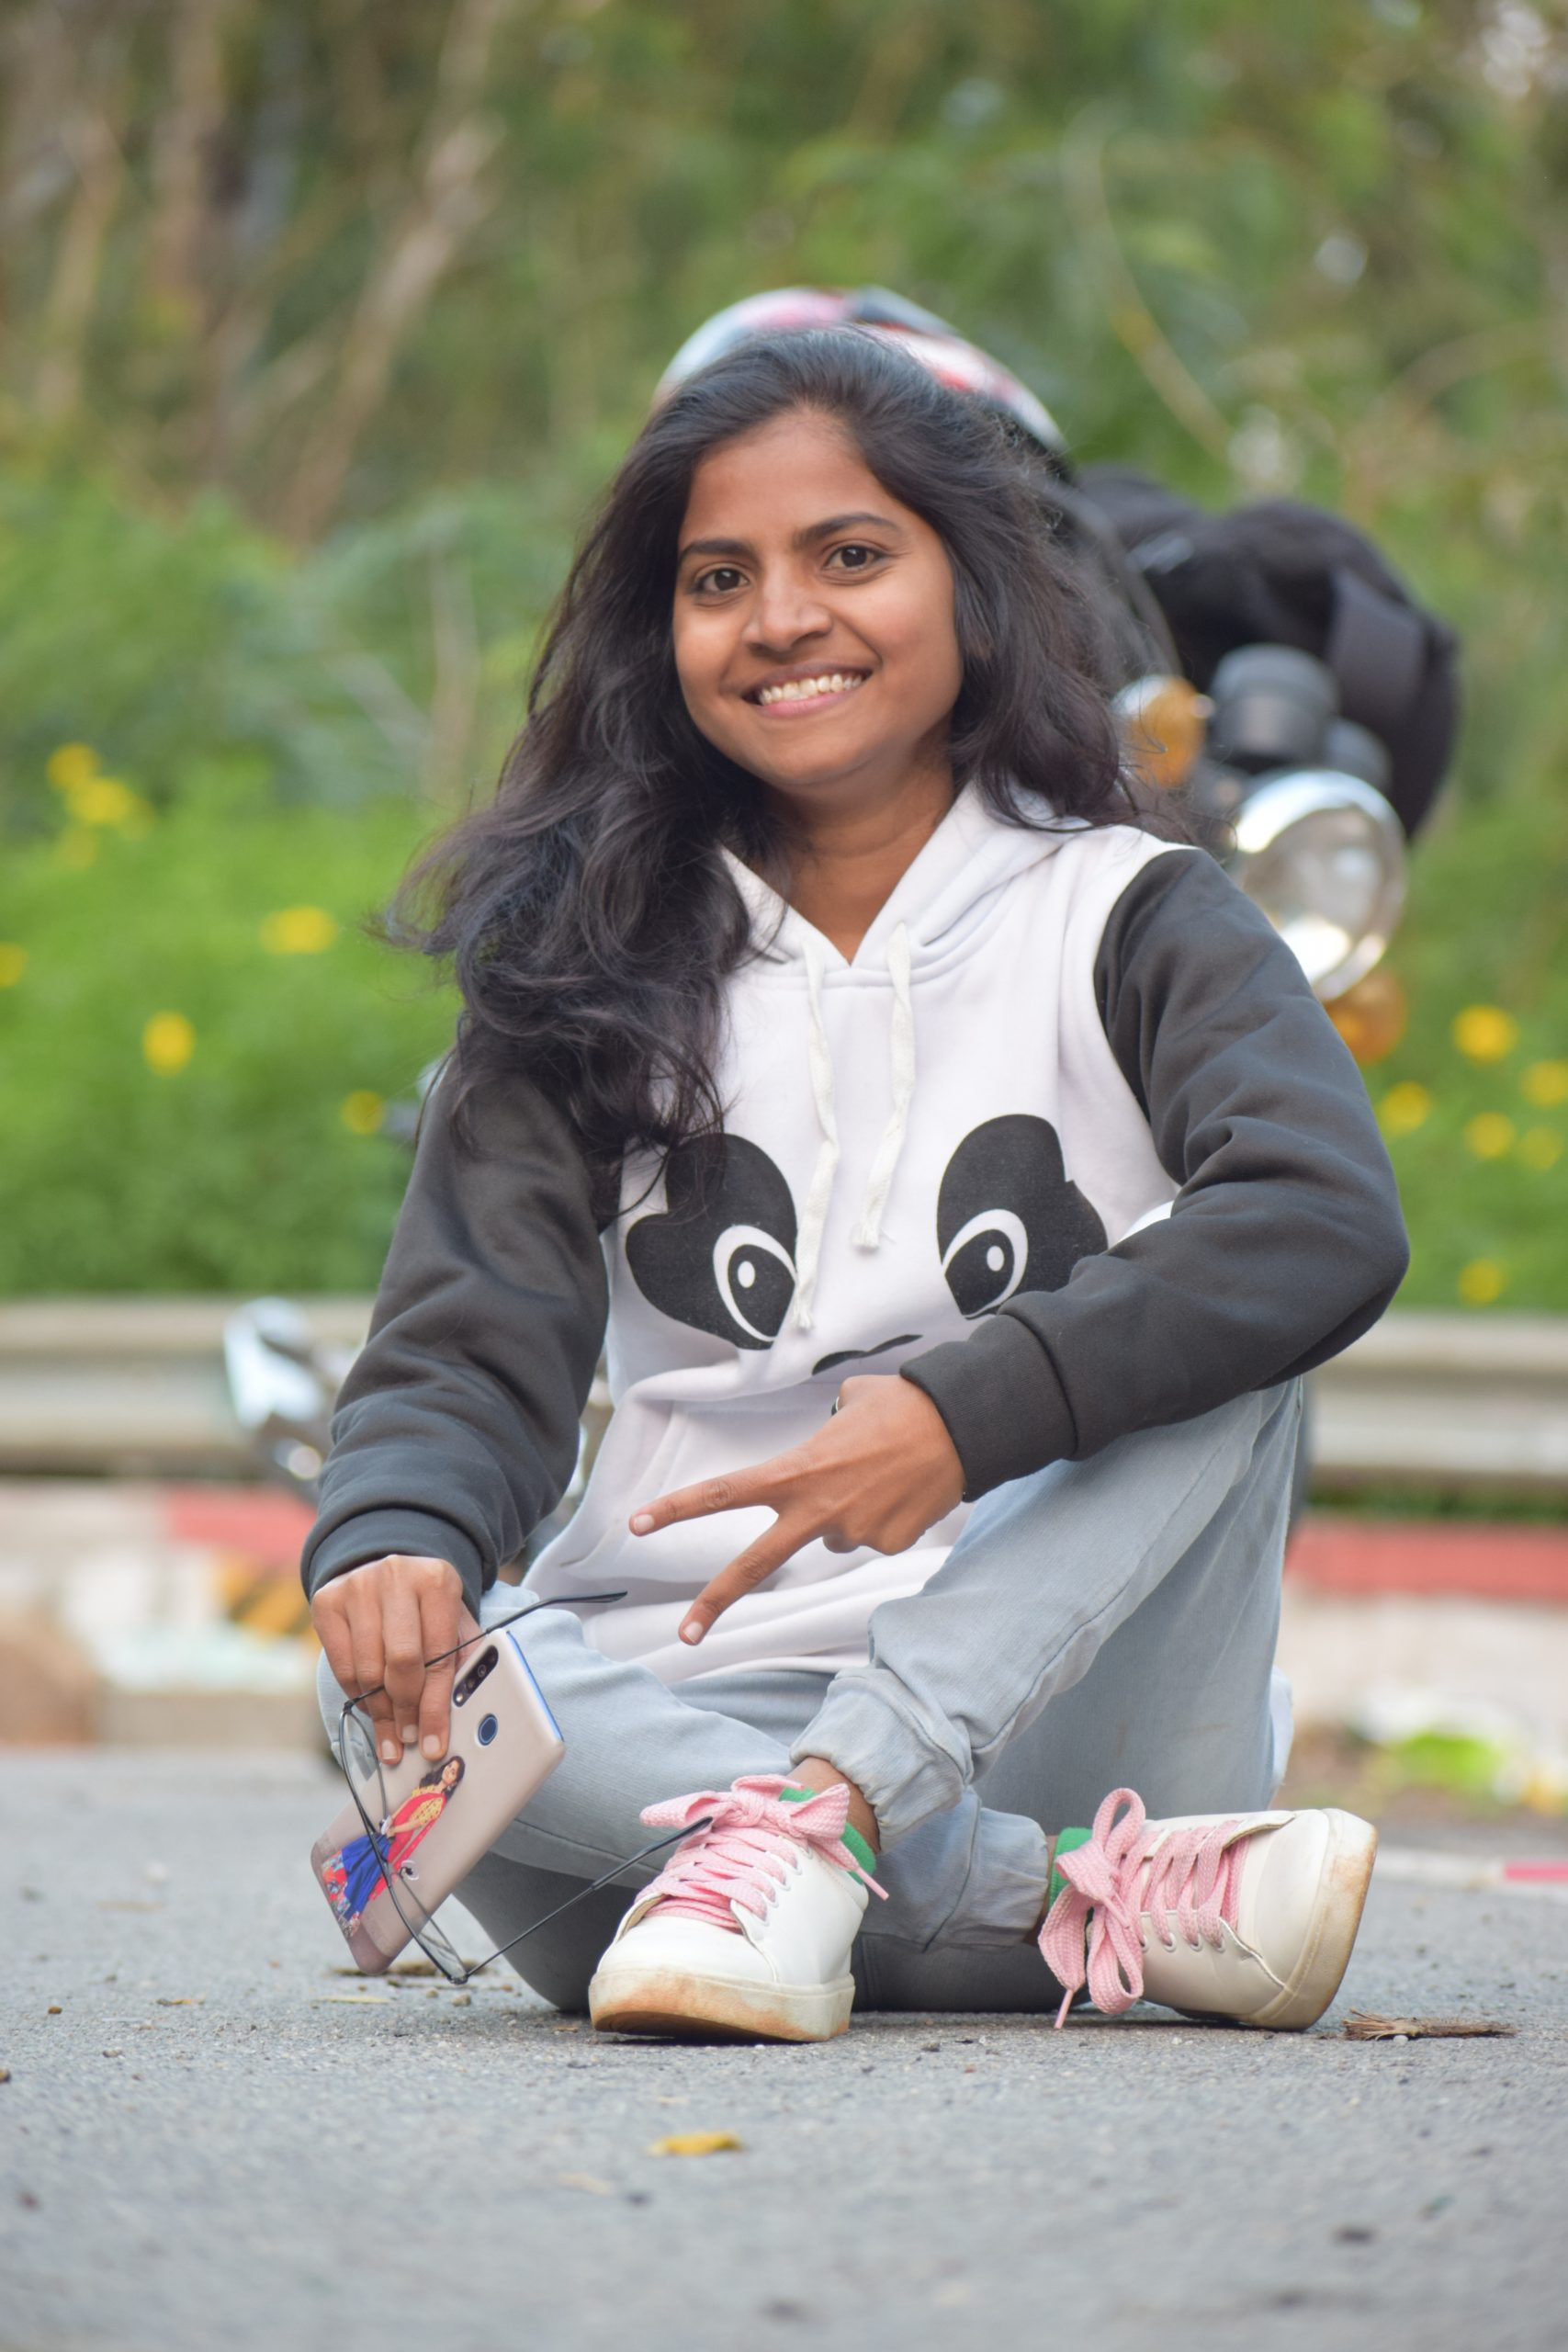 Girl sitting on the ground and smiling